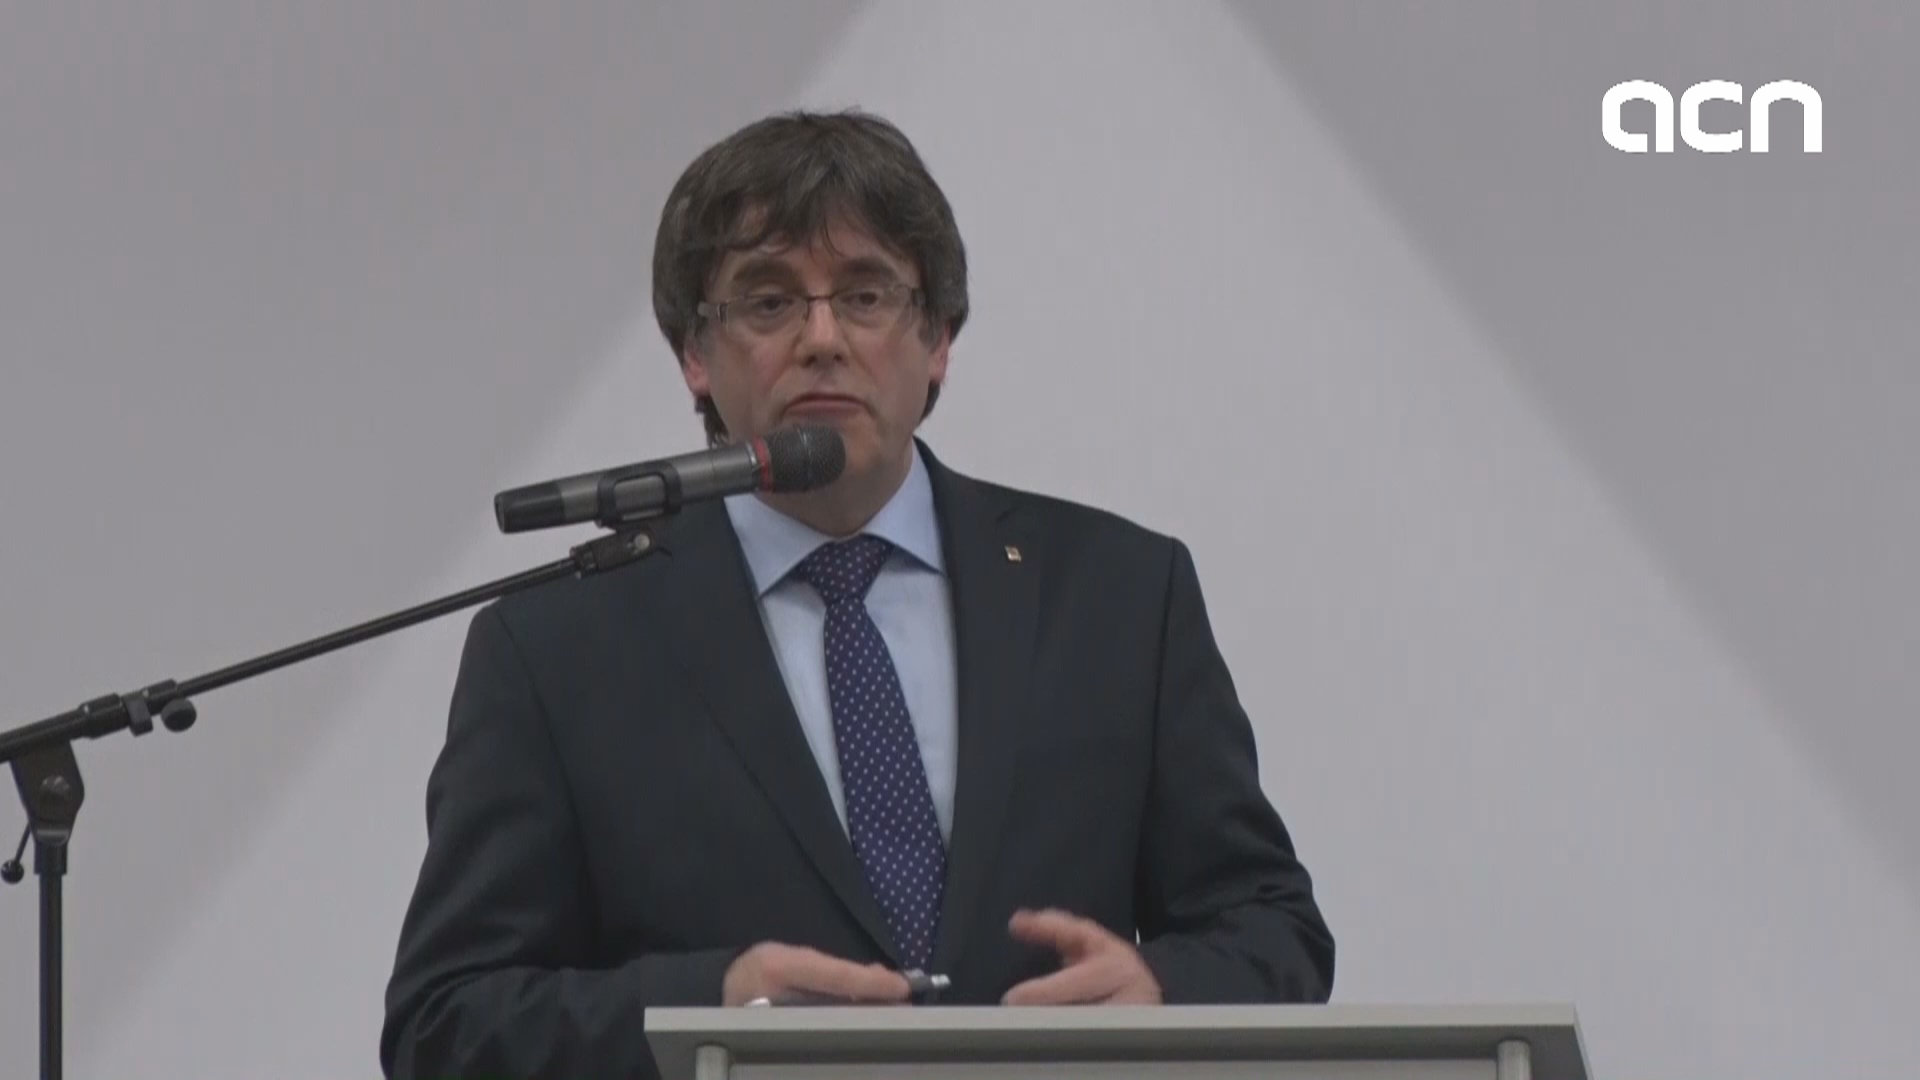 Puigdemont: 'We are close to an agreement'